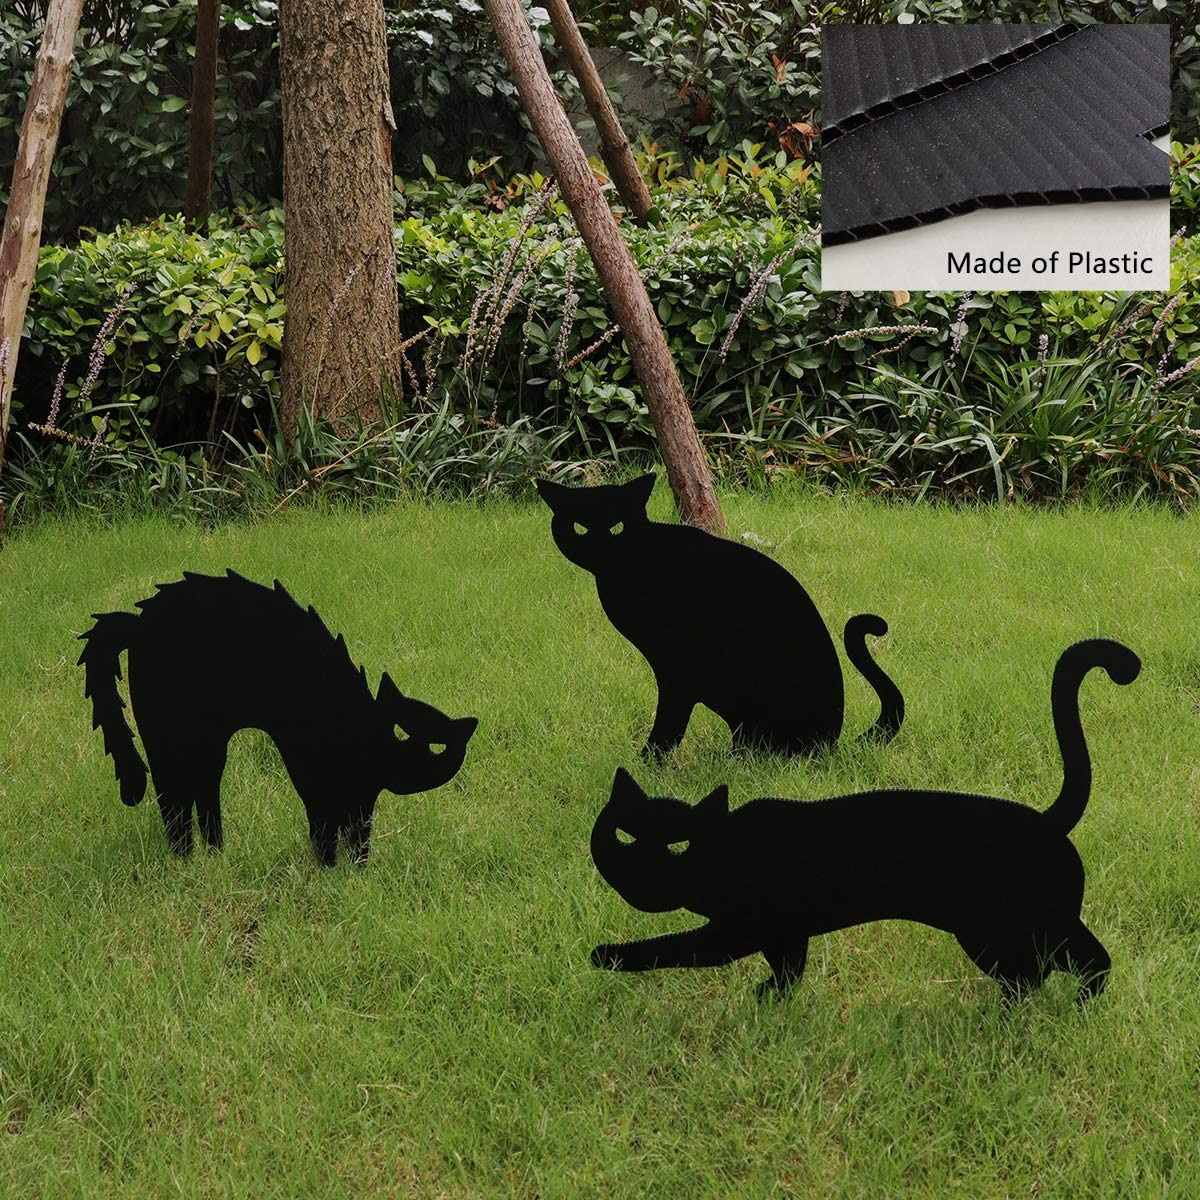 Ivenf Halloween Decorations Outdoor, 3ct Black Cat Silhouette Yard Signs with Stakes, Scary Family Home Front Yard Party Plastic Decor